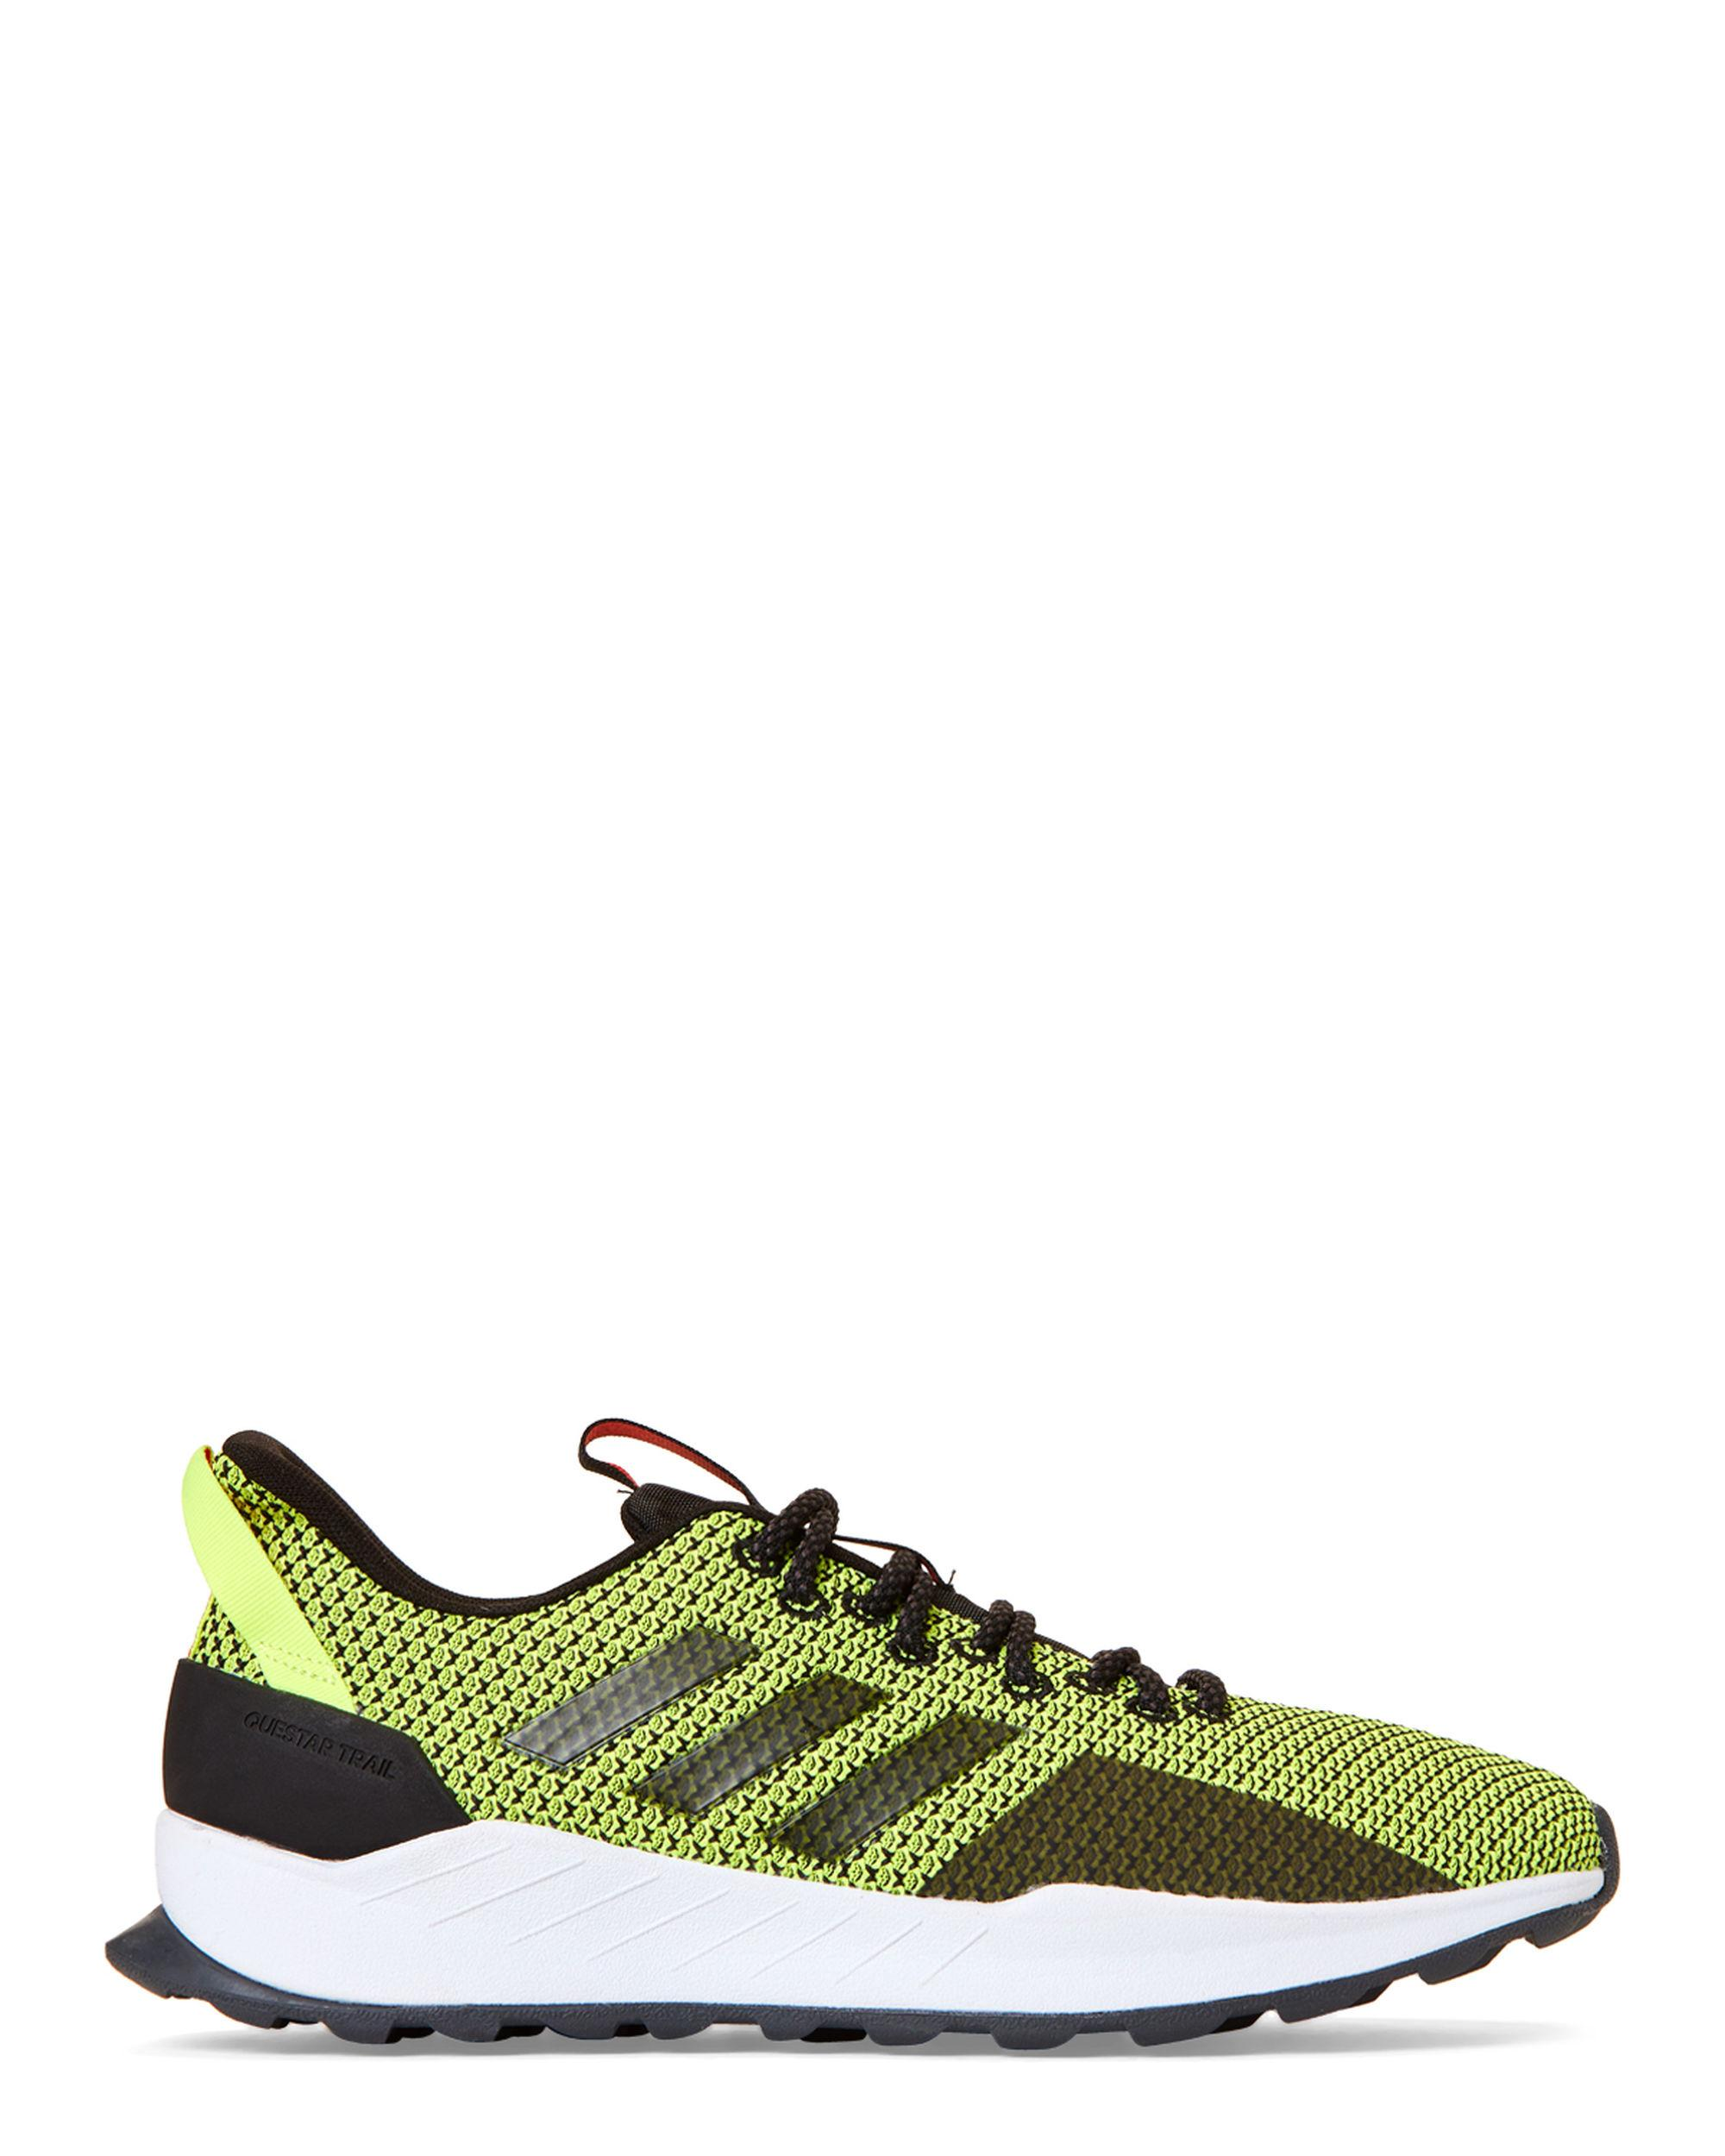 e03a9dc7d6662 Lyst - adidas Black   Hi-res Yellow Questar Trail Running Sneakers in Black  for Men